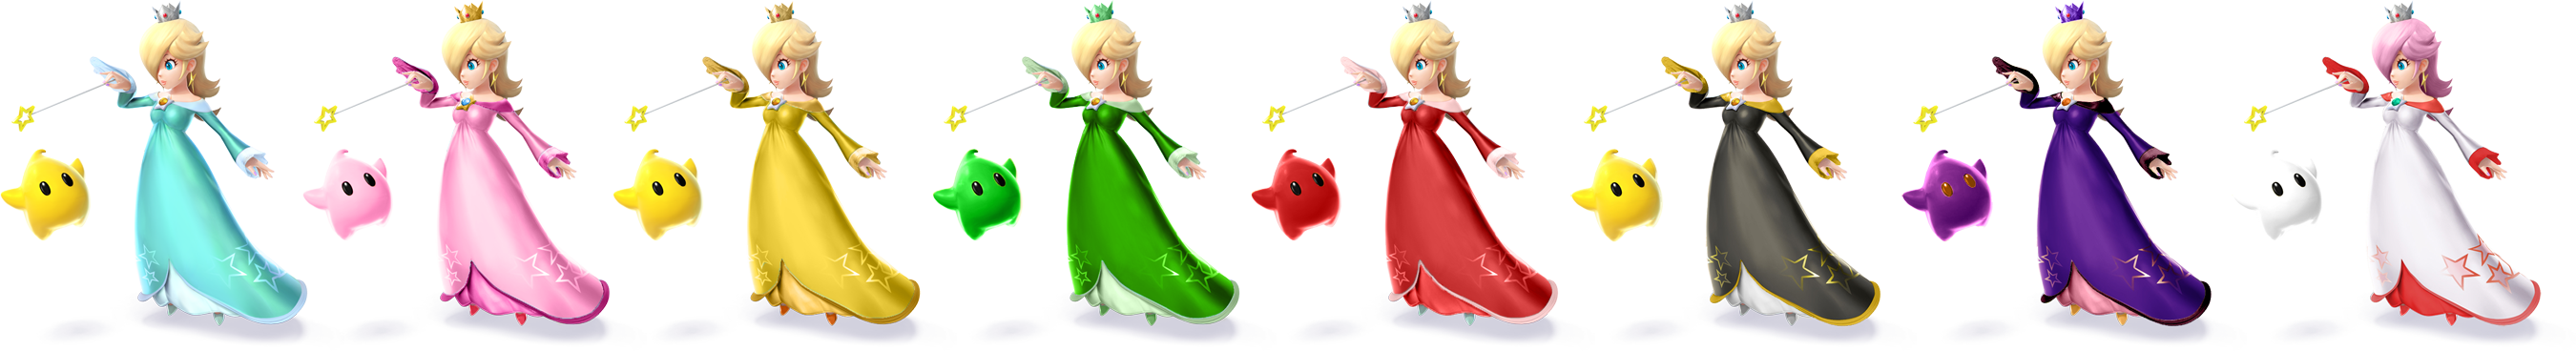 ssbriot rosalina color palettes - Rosalina Peach Coloring Pages